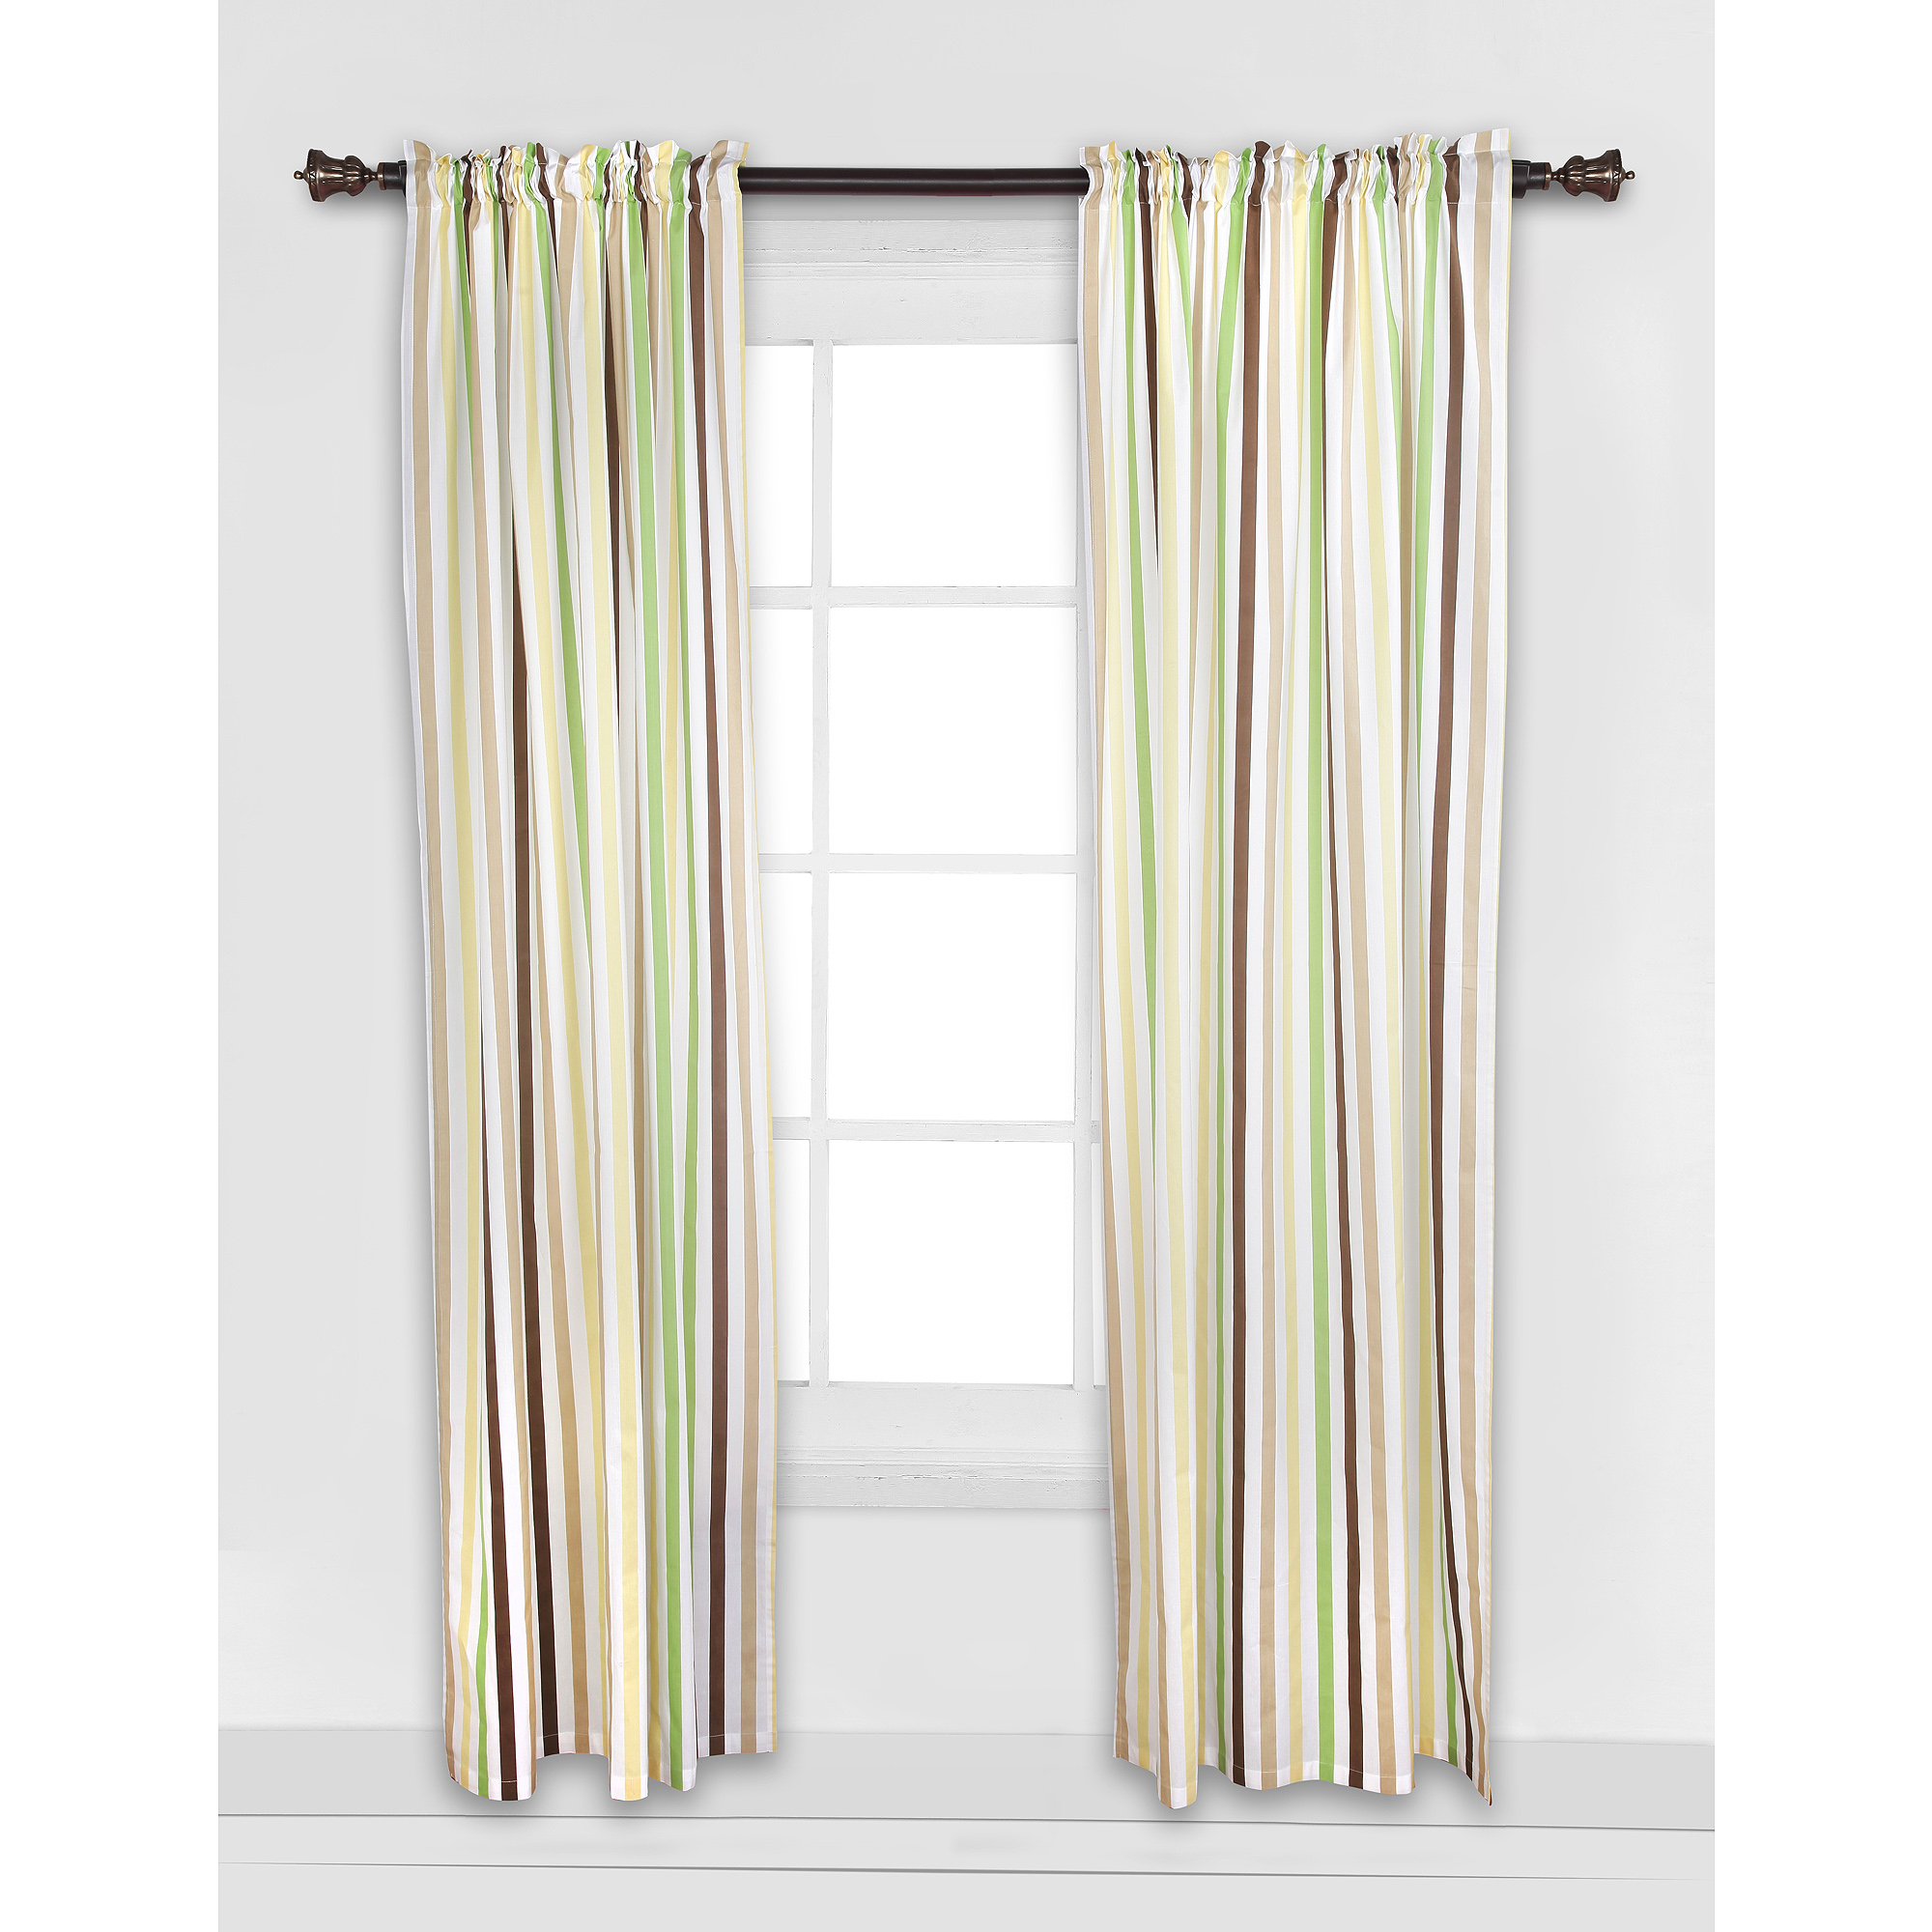 Popular Micro Striped Semi Sheer Window Curtain Pieces For Bed Bath N More Ivory Micro Striped Semi Sheer Window Curtain Pieces – Tiers, Valance And Swag Options (View 20 of 20)